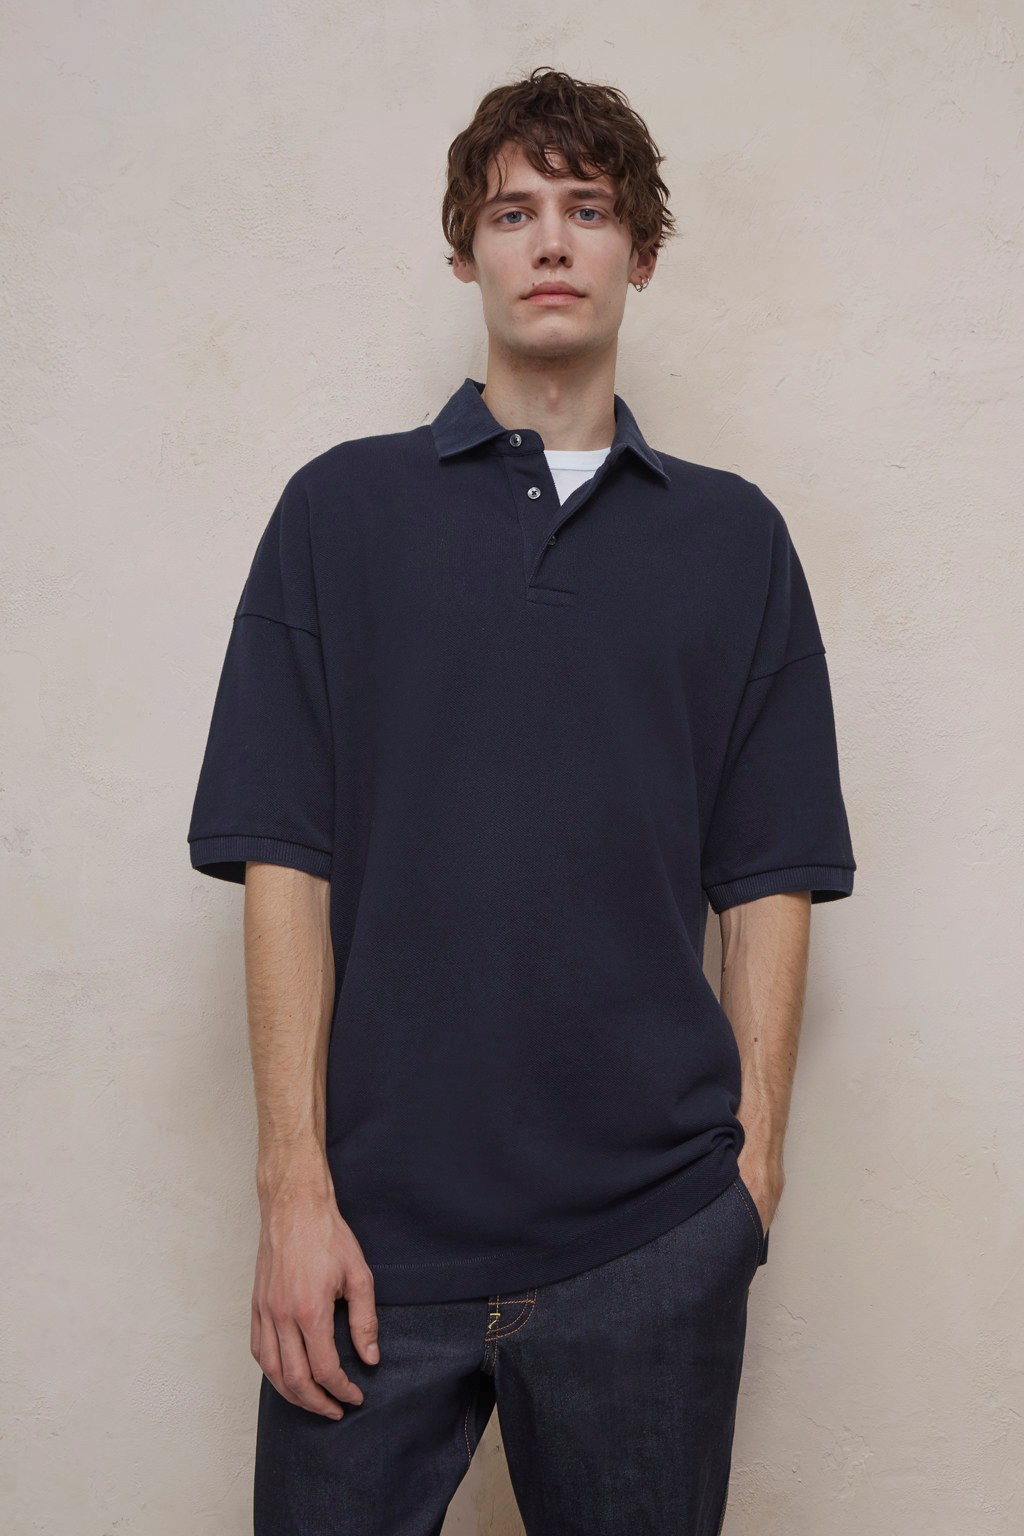 Here are a few examples of how you can style your oversized polo shirt: A black polo thats in a good condition is as good as any button down shirt. For a retro,gentlemanly look, grab one in an old school knit fabric. A polo in a strong colour is a good way to give the jeans you wear everyday an update.